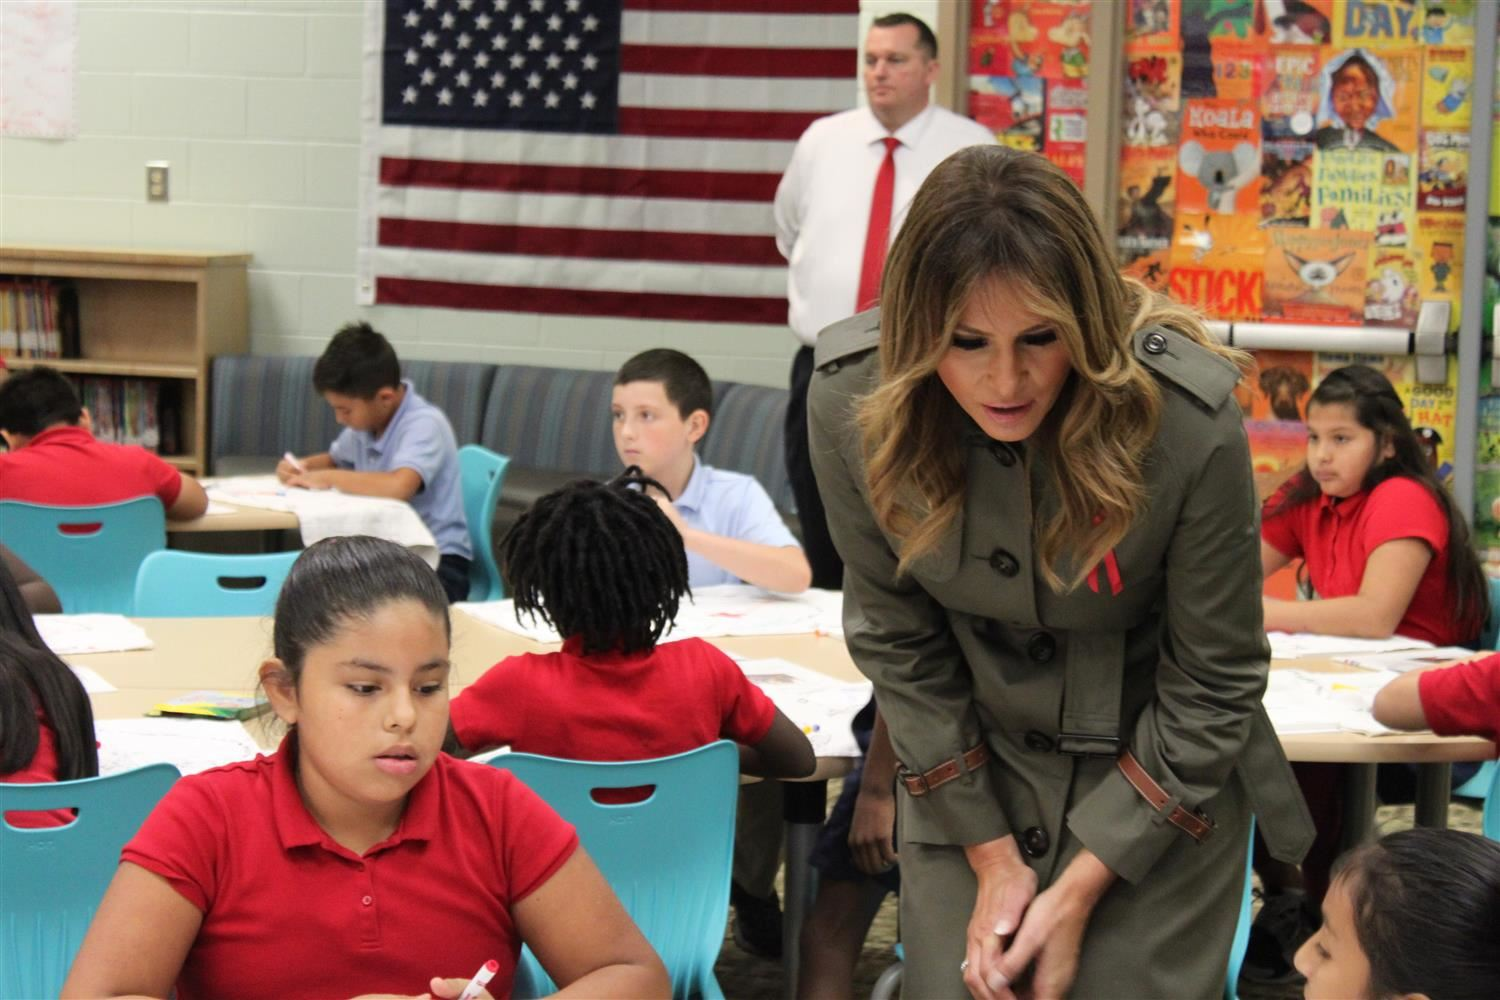 First Lady Melania Trump speaks with students at Lambs Elementary